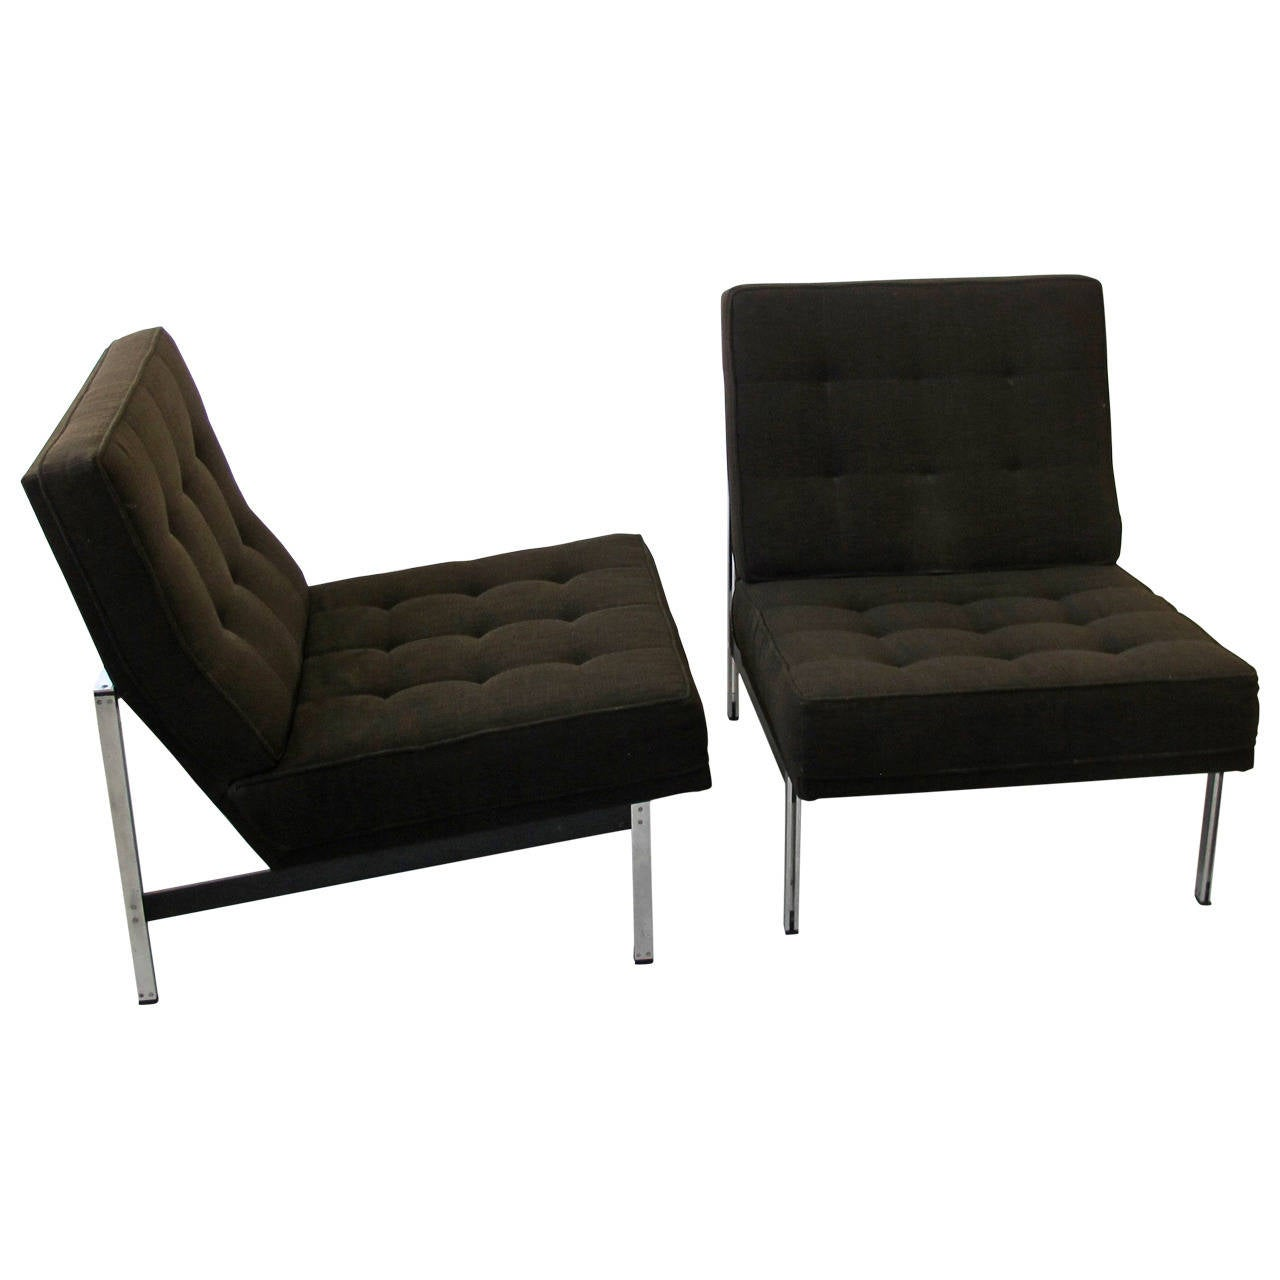 Pair Of Parallel Bar Lounge Chairs By Florence Knoll